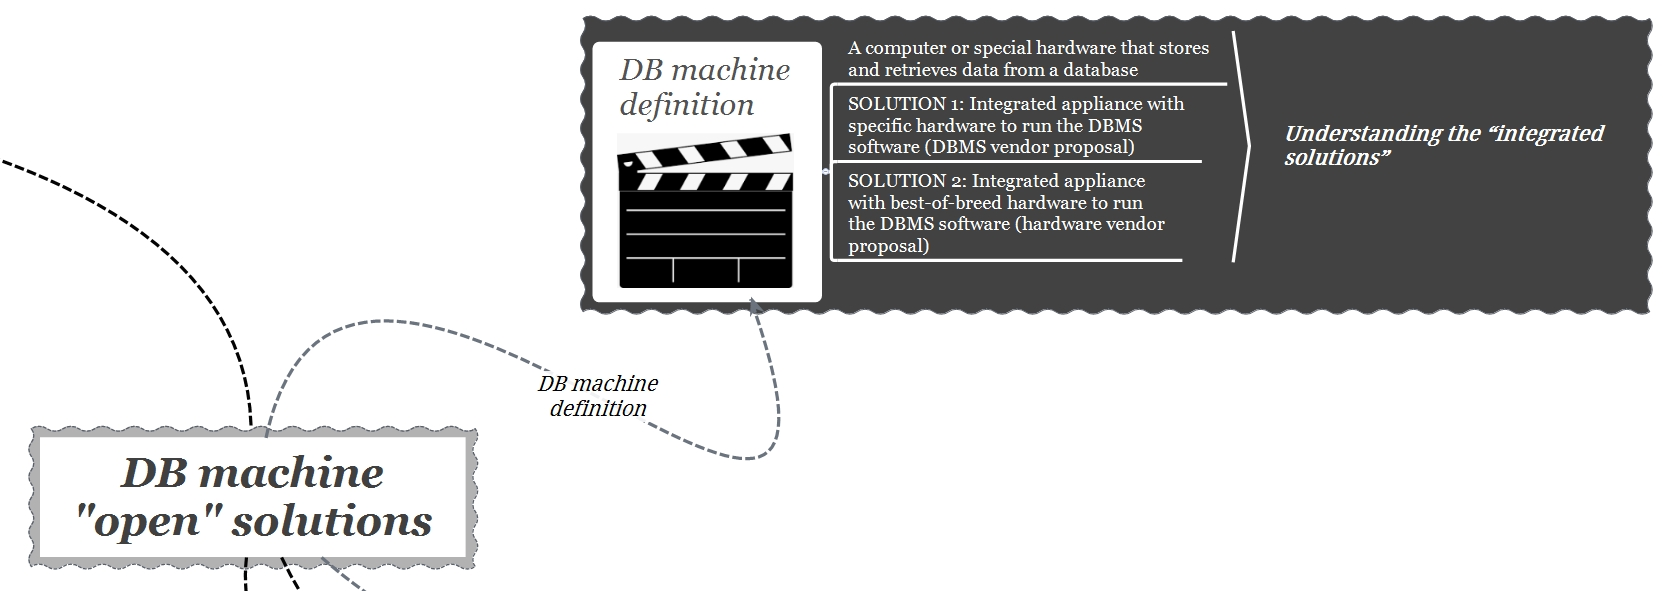 db machine open - definition